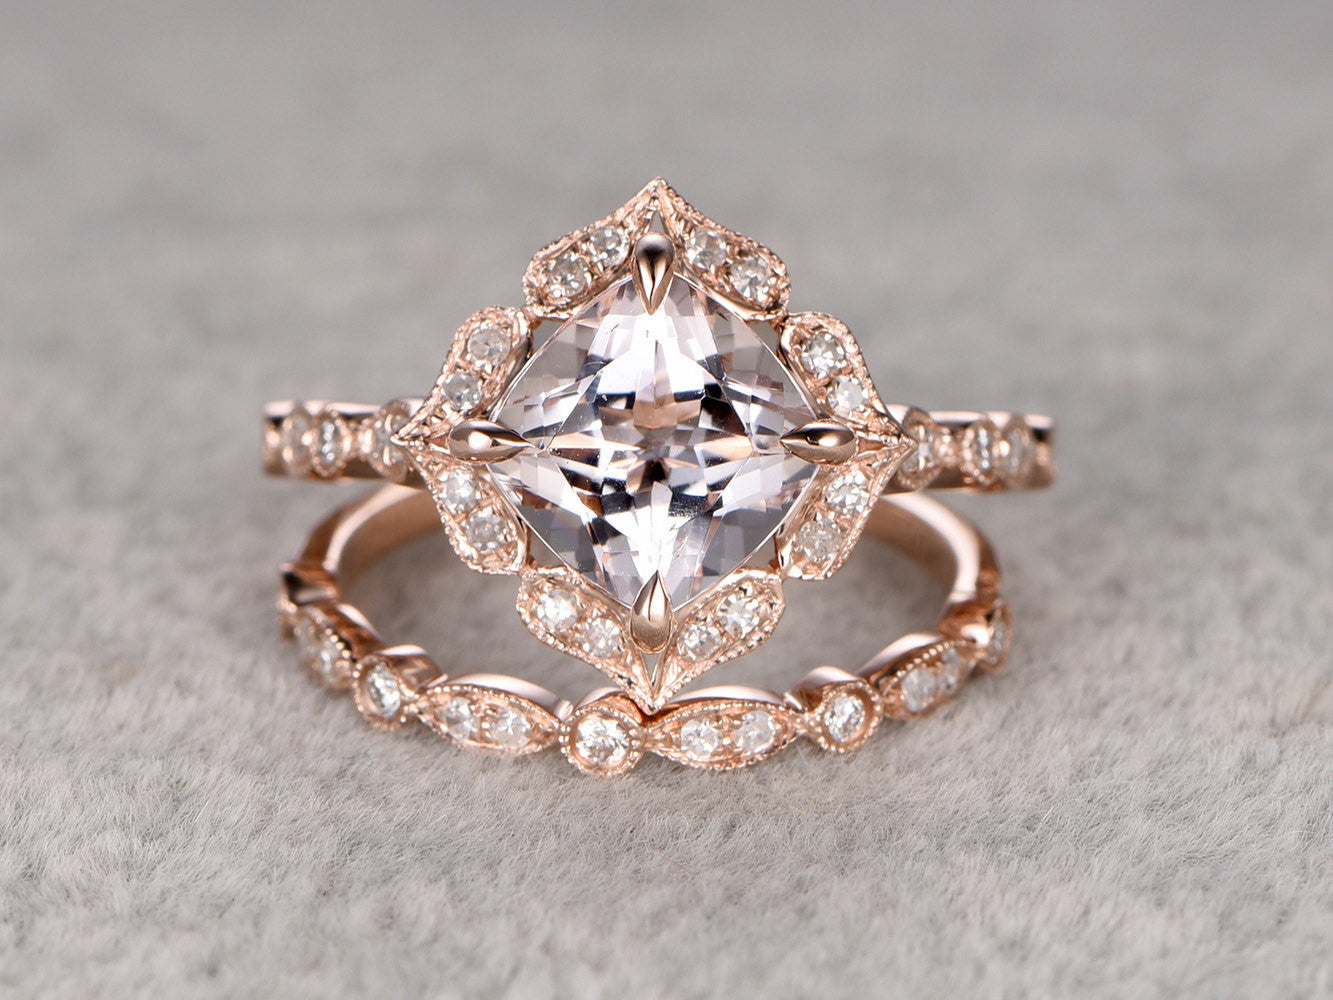 2pcs 8mm Morganite Bridal Ring Set,Art Deco Engagement ring 14k Rose gold,Diamond wedding band,Cushion Cut,Promise Ring,Retro Vintage Floral